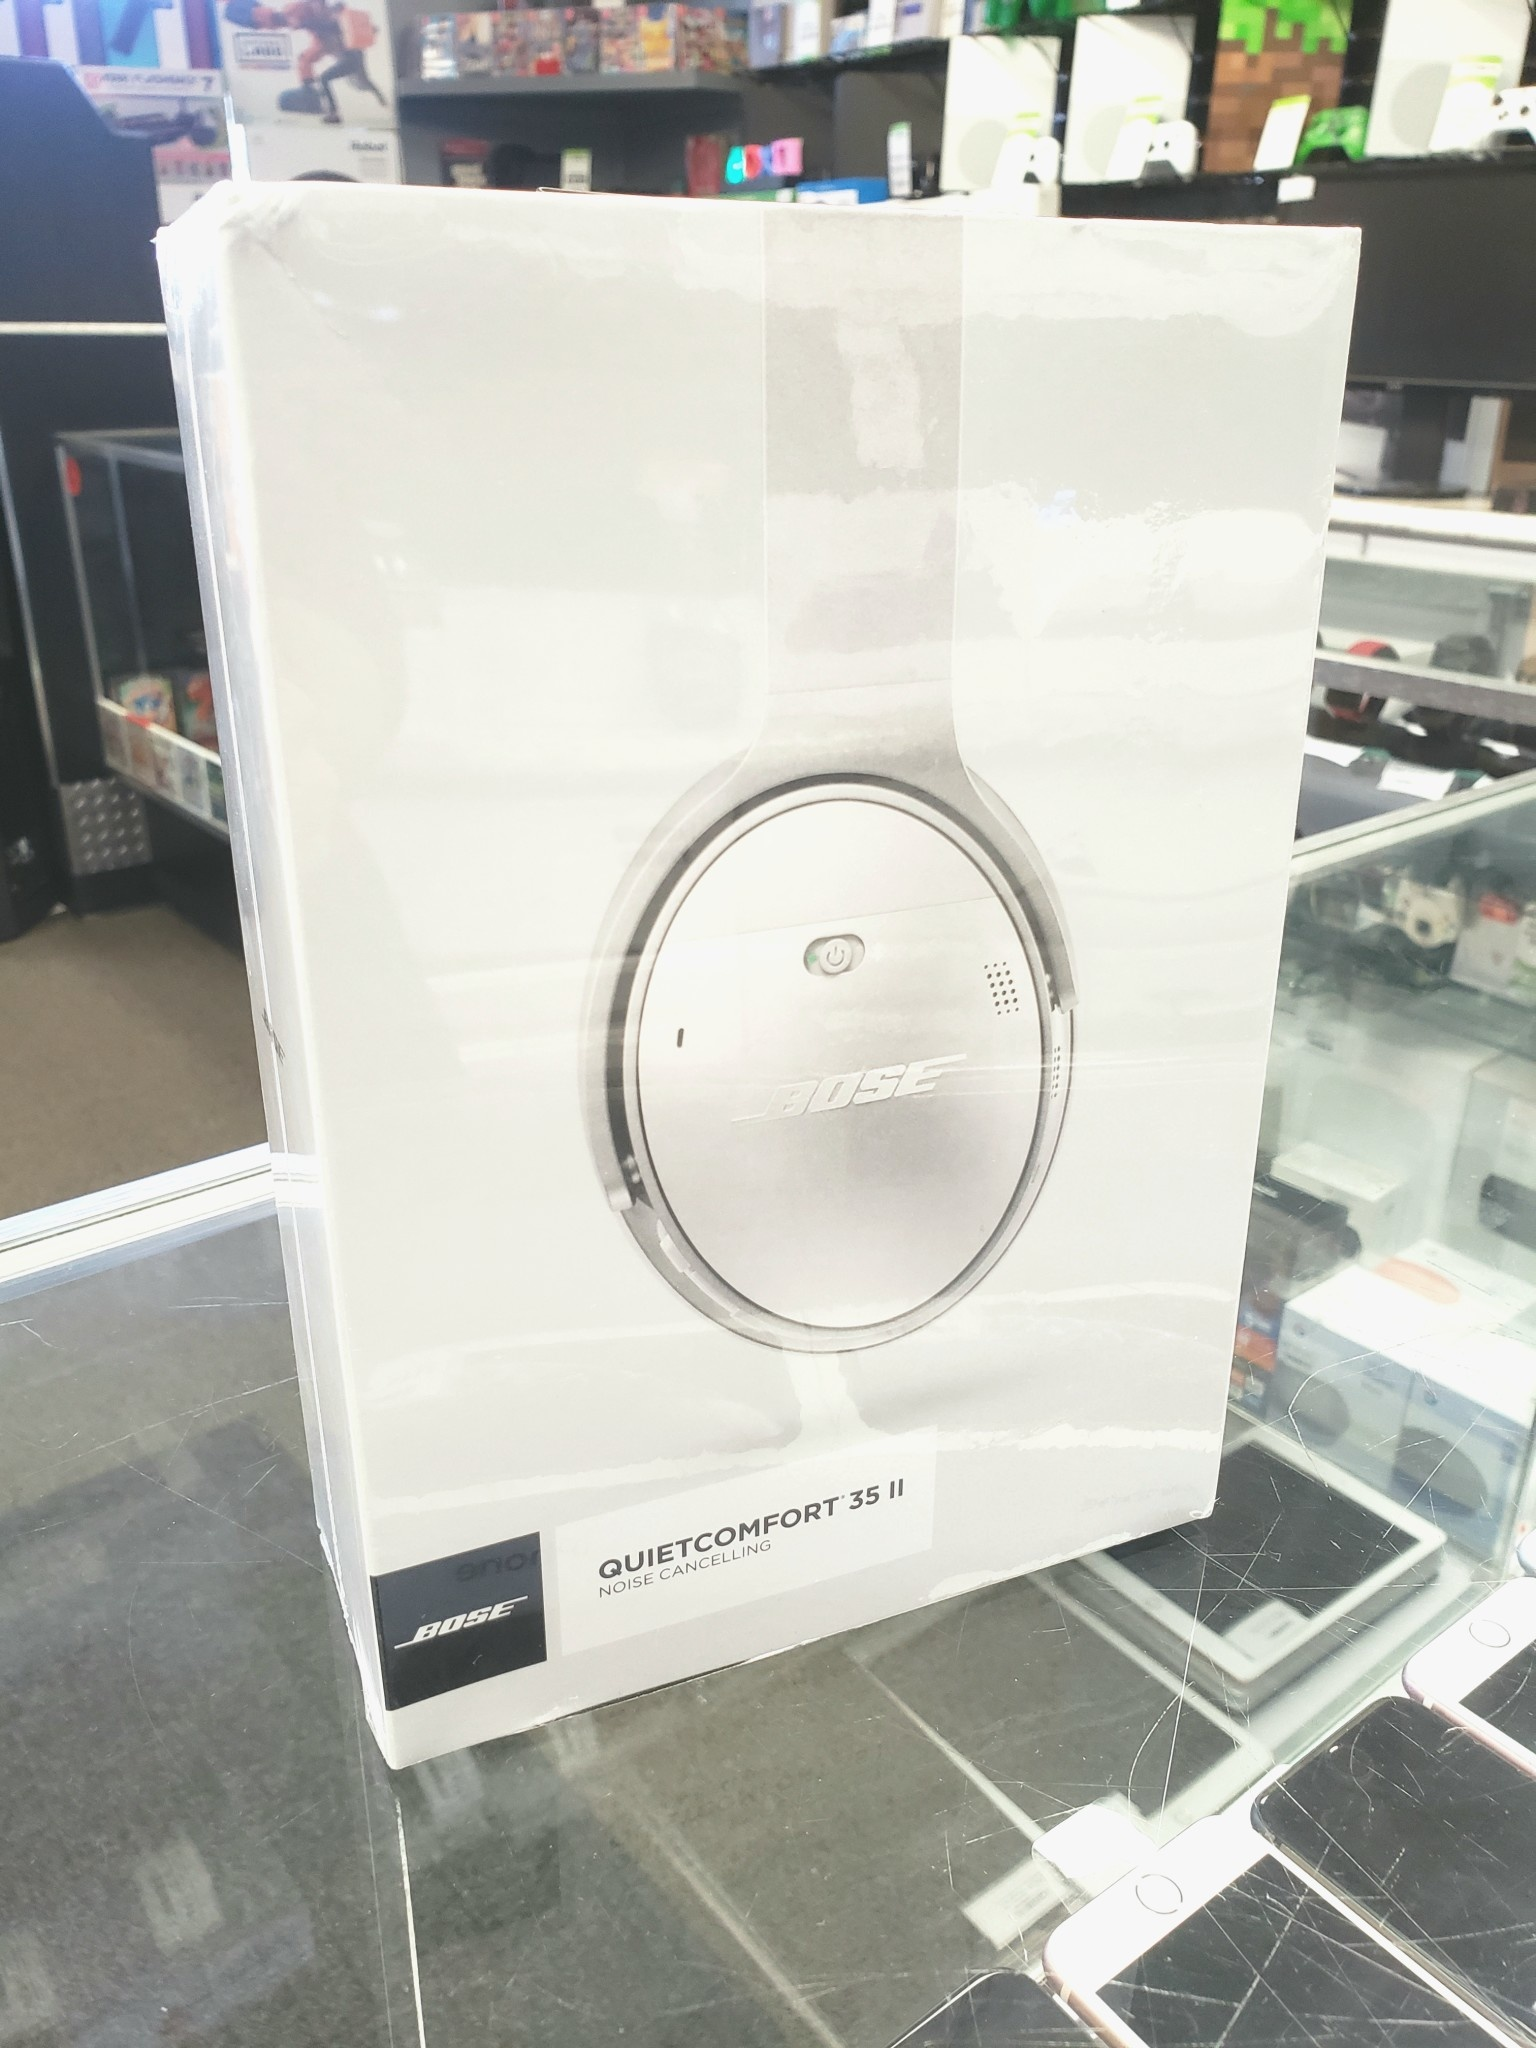 New Sealed - Bose QuietComfort 35 II Acoustic Noise Cancelling WIRELESS Headphones - Silver